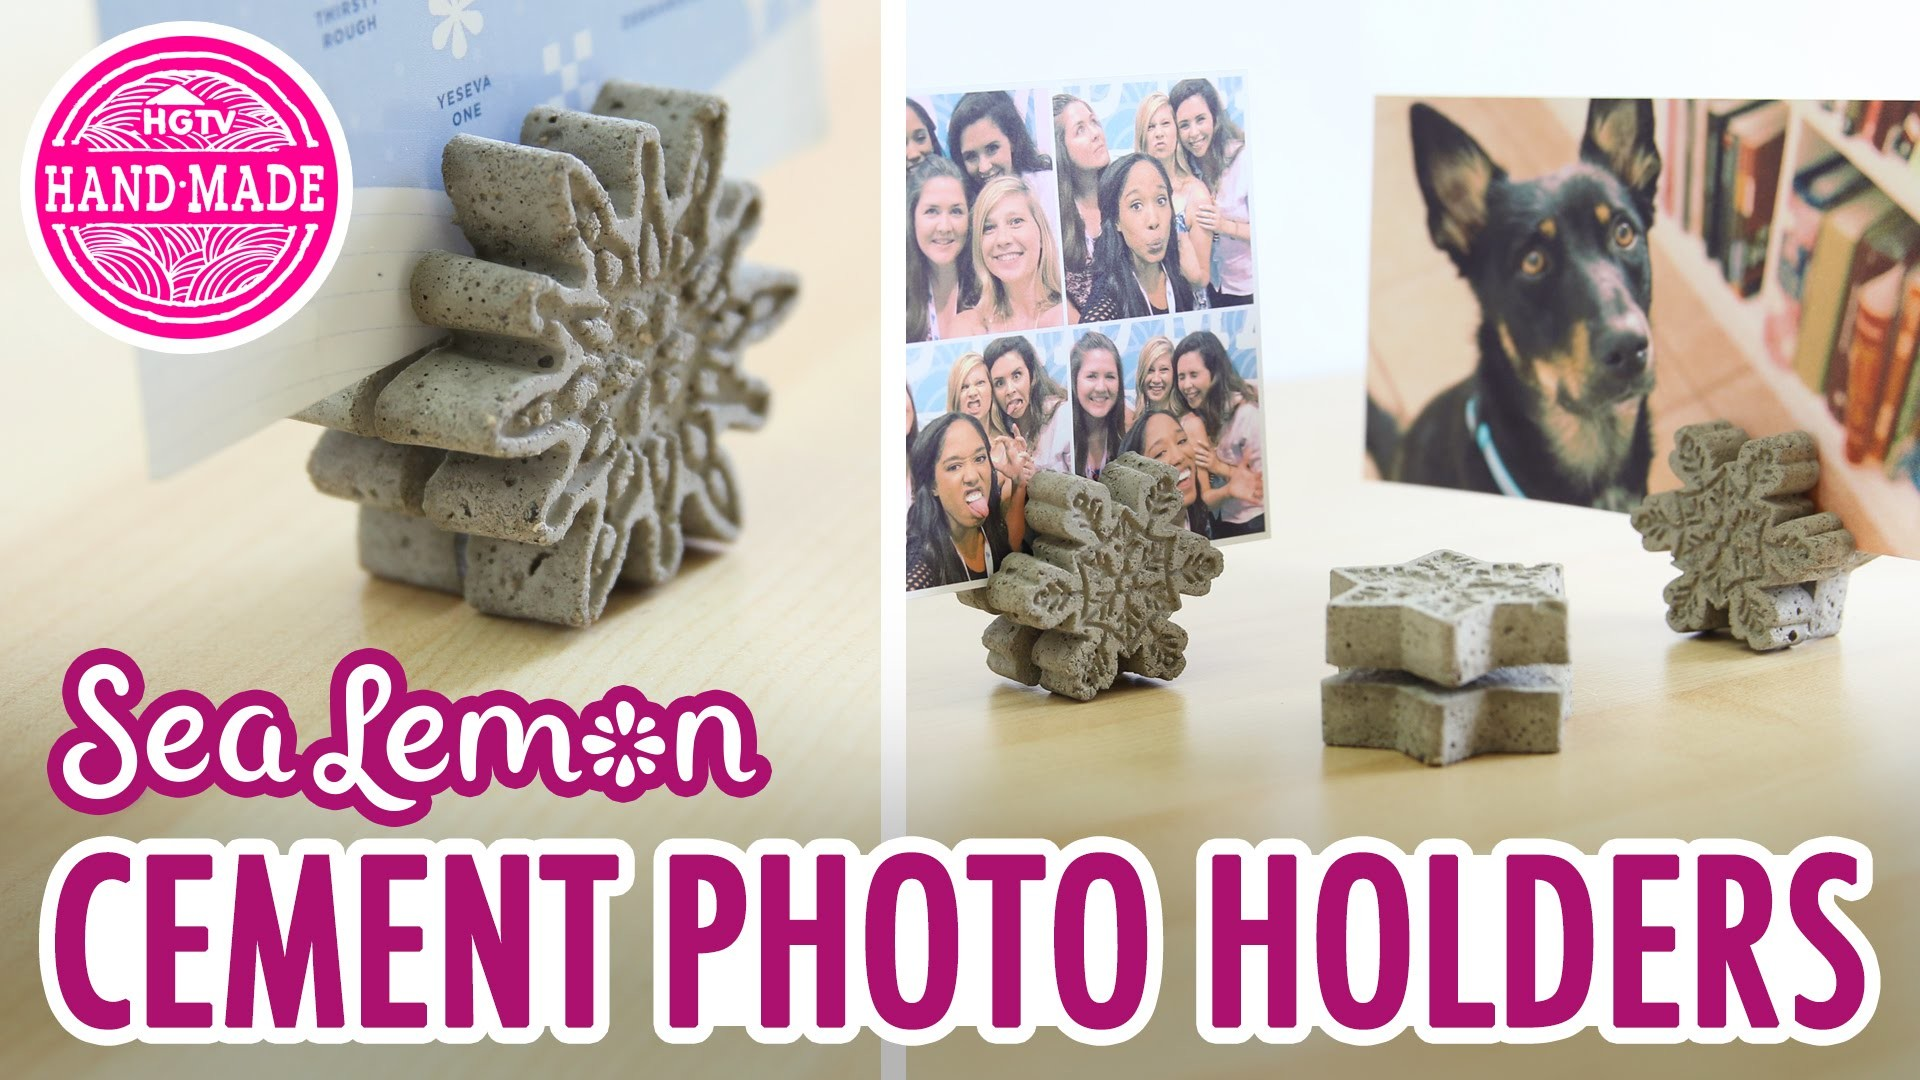 DIY Cement Photo Holders with Sea Lemon - HGTV Handmade